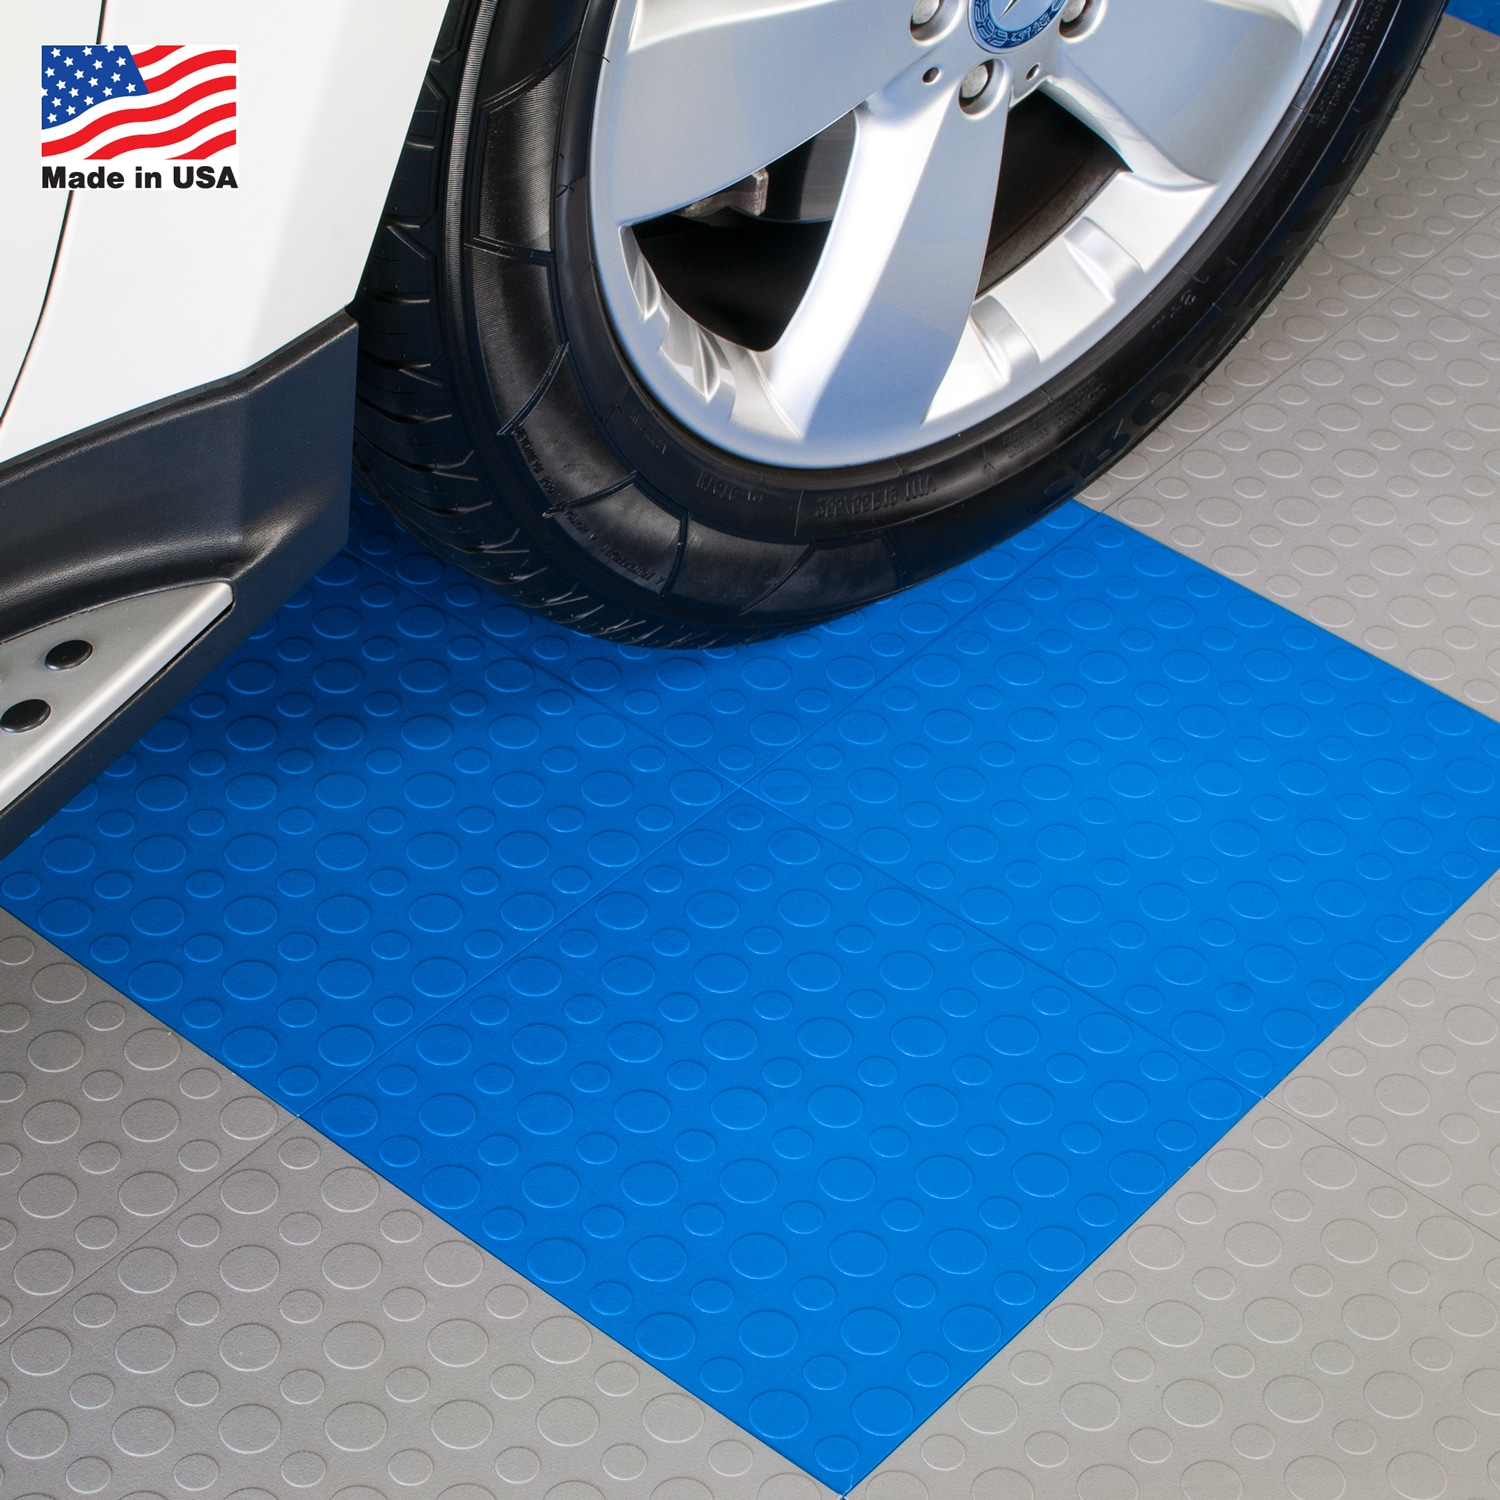 BlockTile Garage Flooring Interlocking Coin Top Tiles (Pack of 30 ...